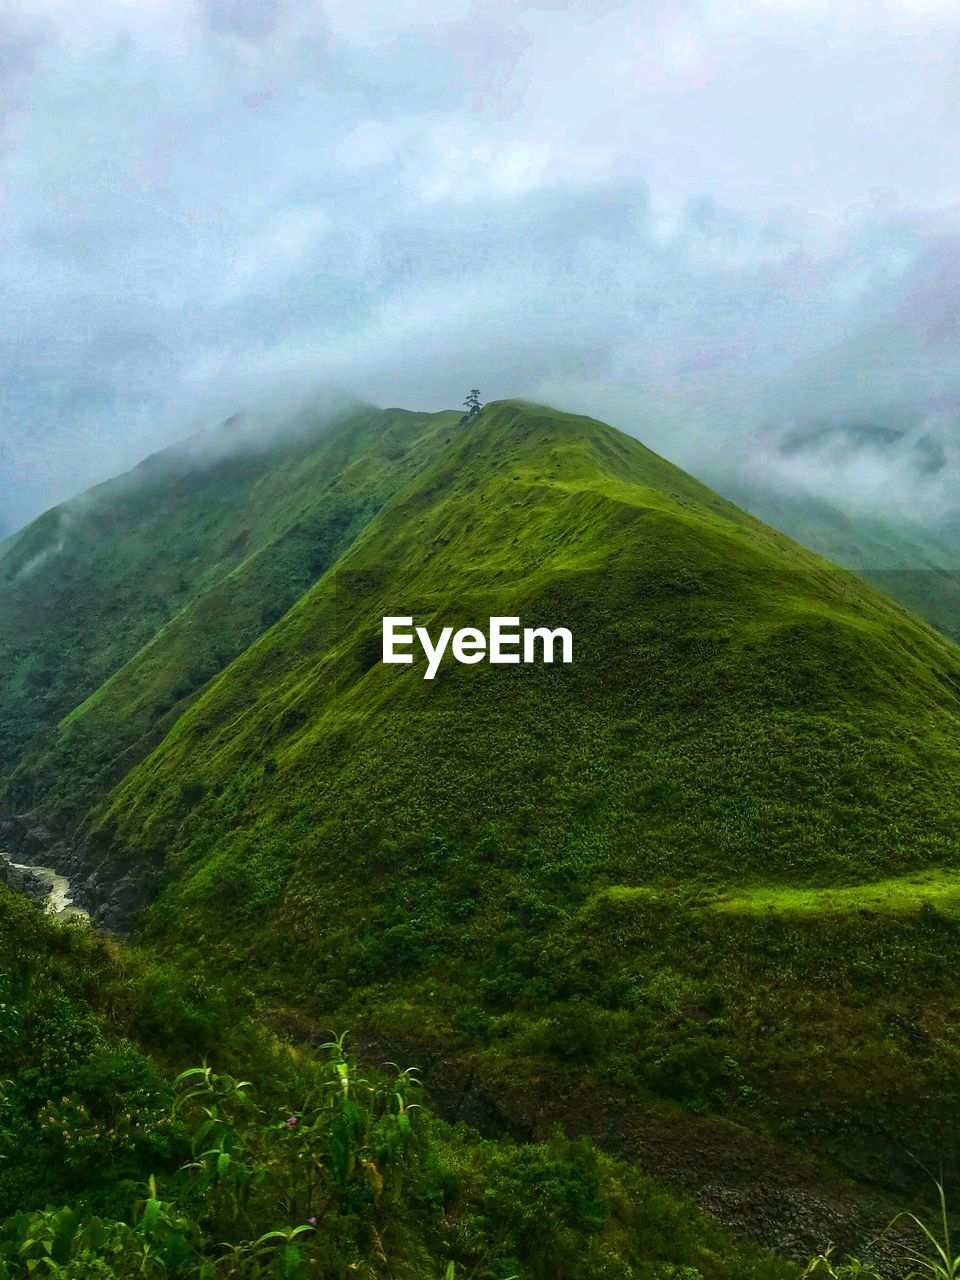 scenics - nature, beauty in nature, tranquility, tranquil scene, green color, landscape, environment, non-urban scene, mountain, day, cloud - sky, plant, sky, nature, no people, outdoors, land, idyllic, fog, mountain peak